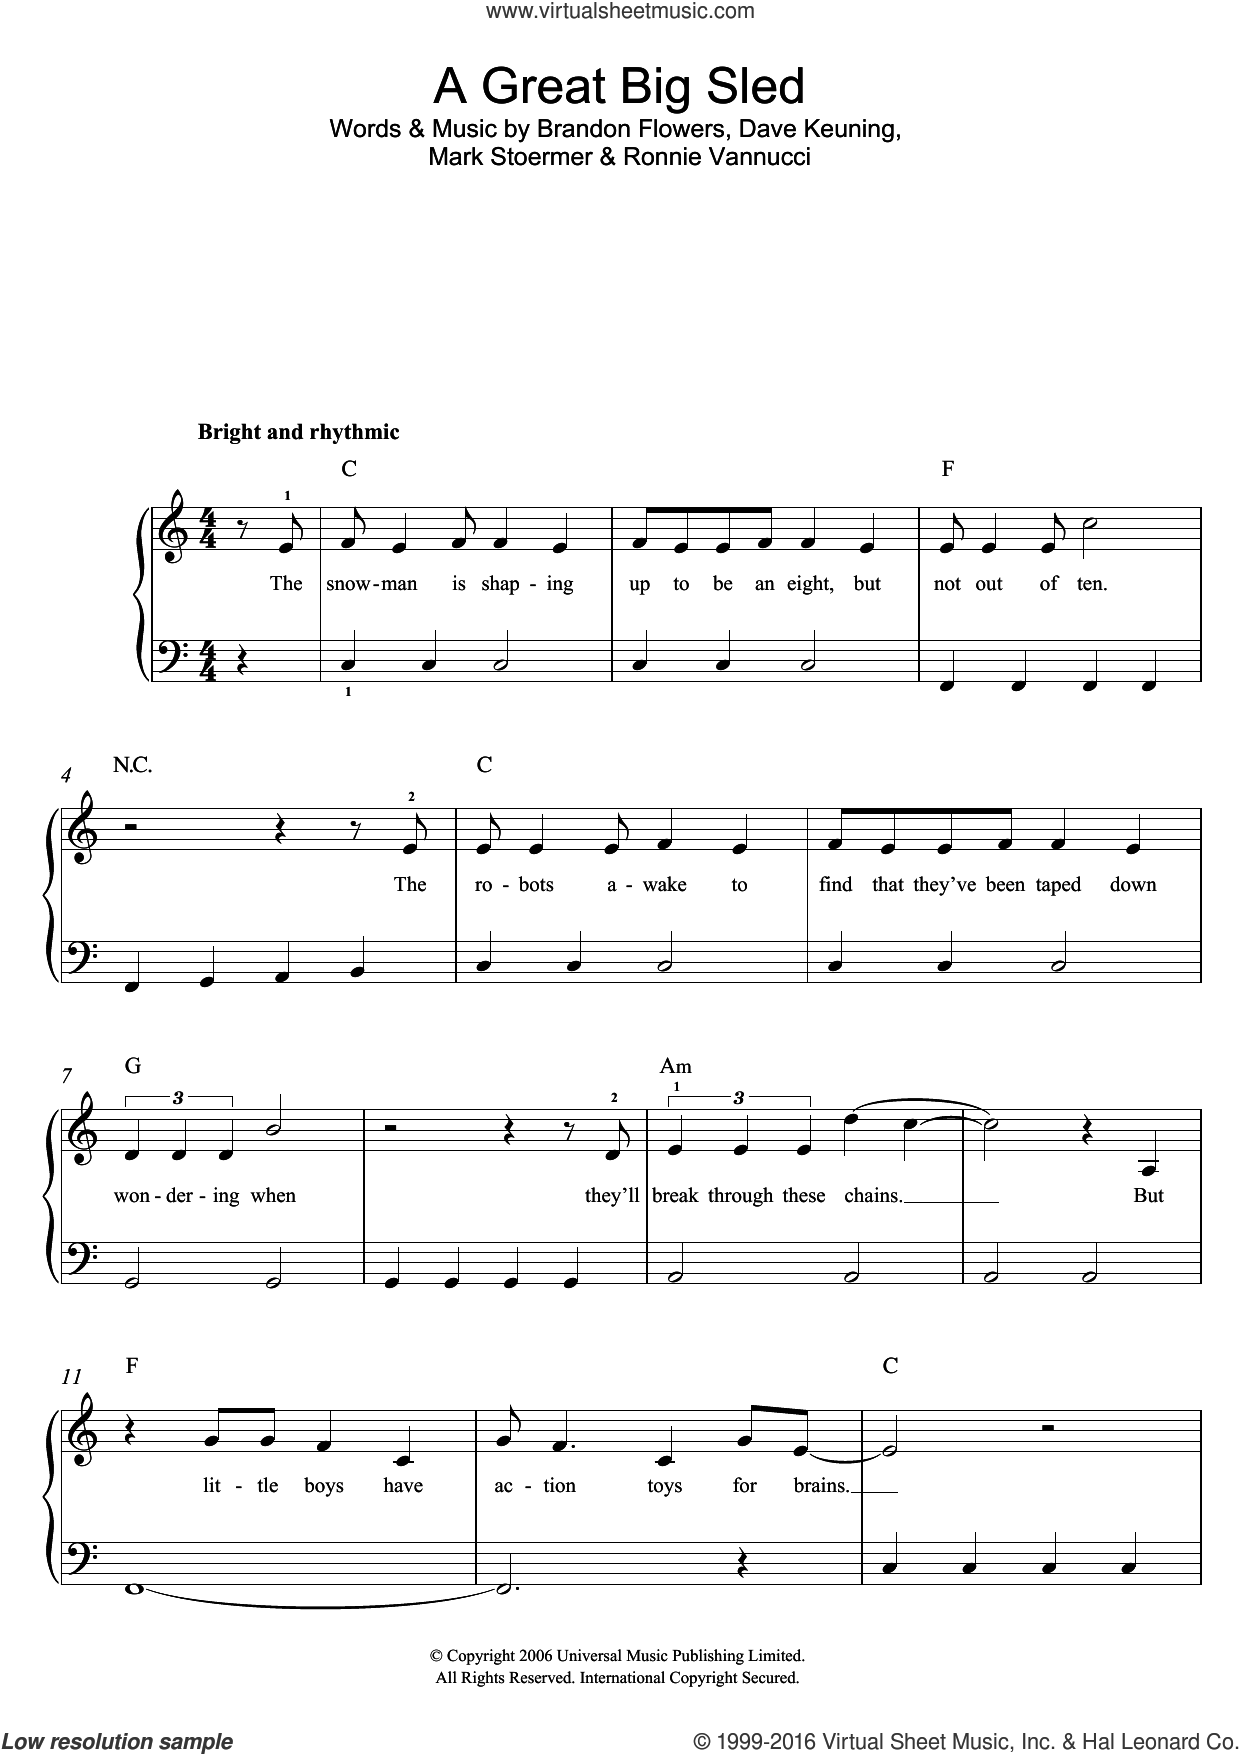 A Great Big Sled sheet music for piano solo by The Killers, Brandon Flowers, Dave Keuning, Mark Stoermer and Ronnie Vannucci, easy. Score Image Preview.